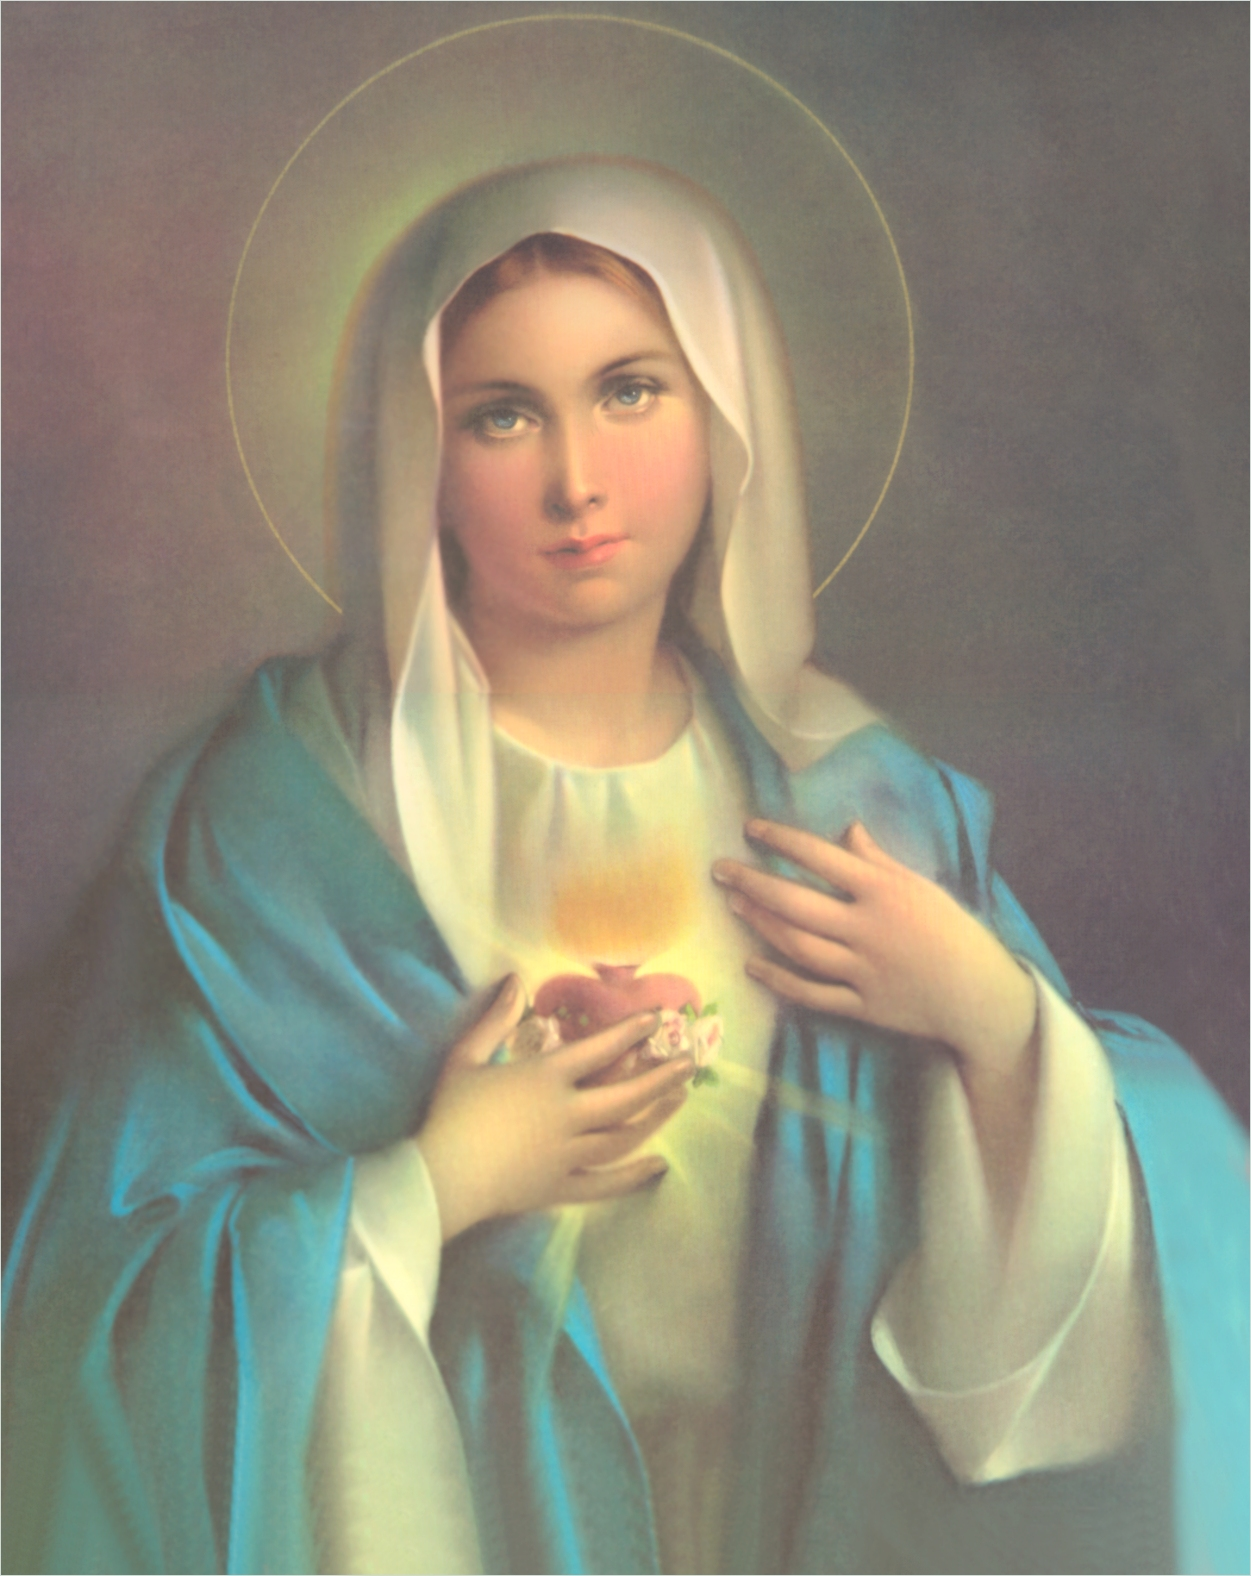 Infallible Catholic: The Blessed Virgin Mary - The New Ark of the Covenant